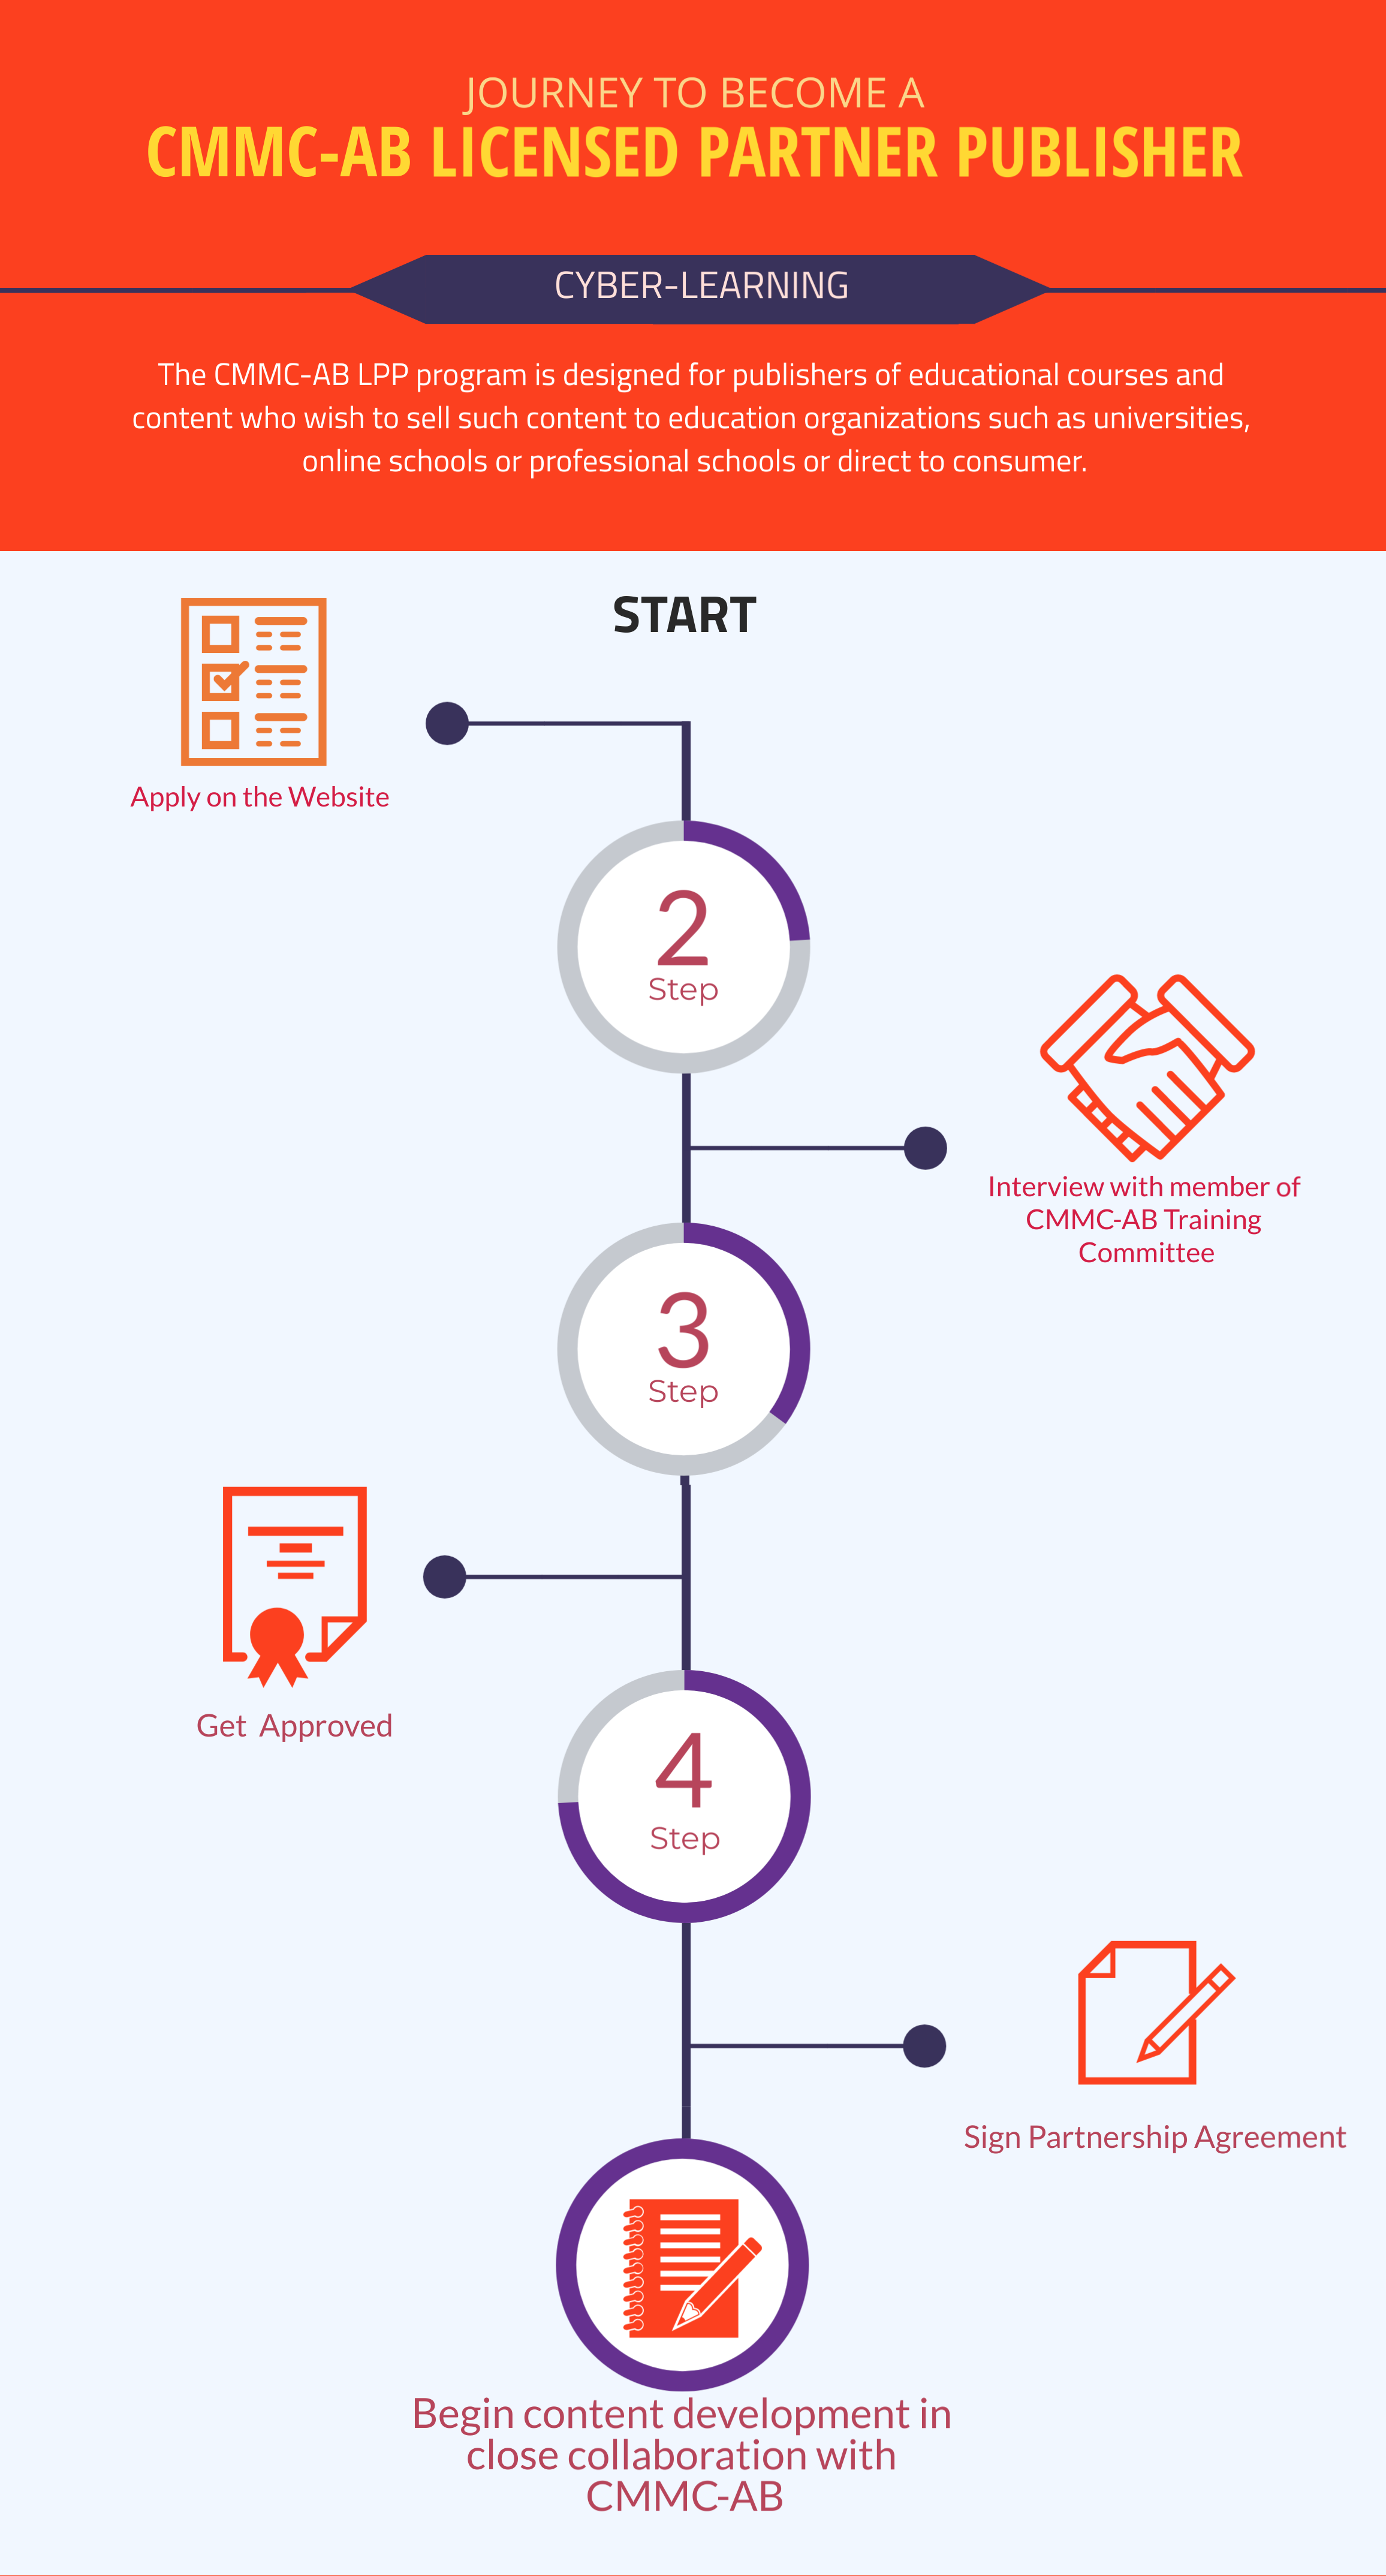 Infographic describing the journey to become a Licensed Partner Publisher